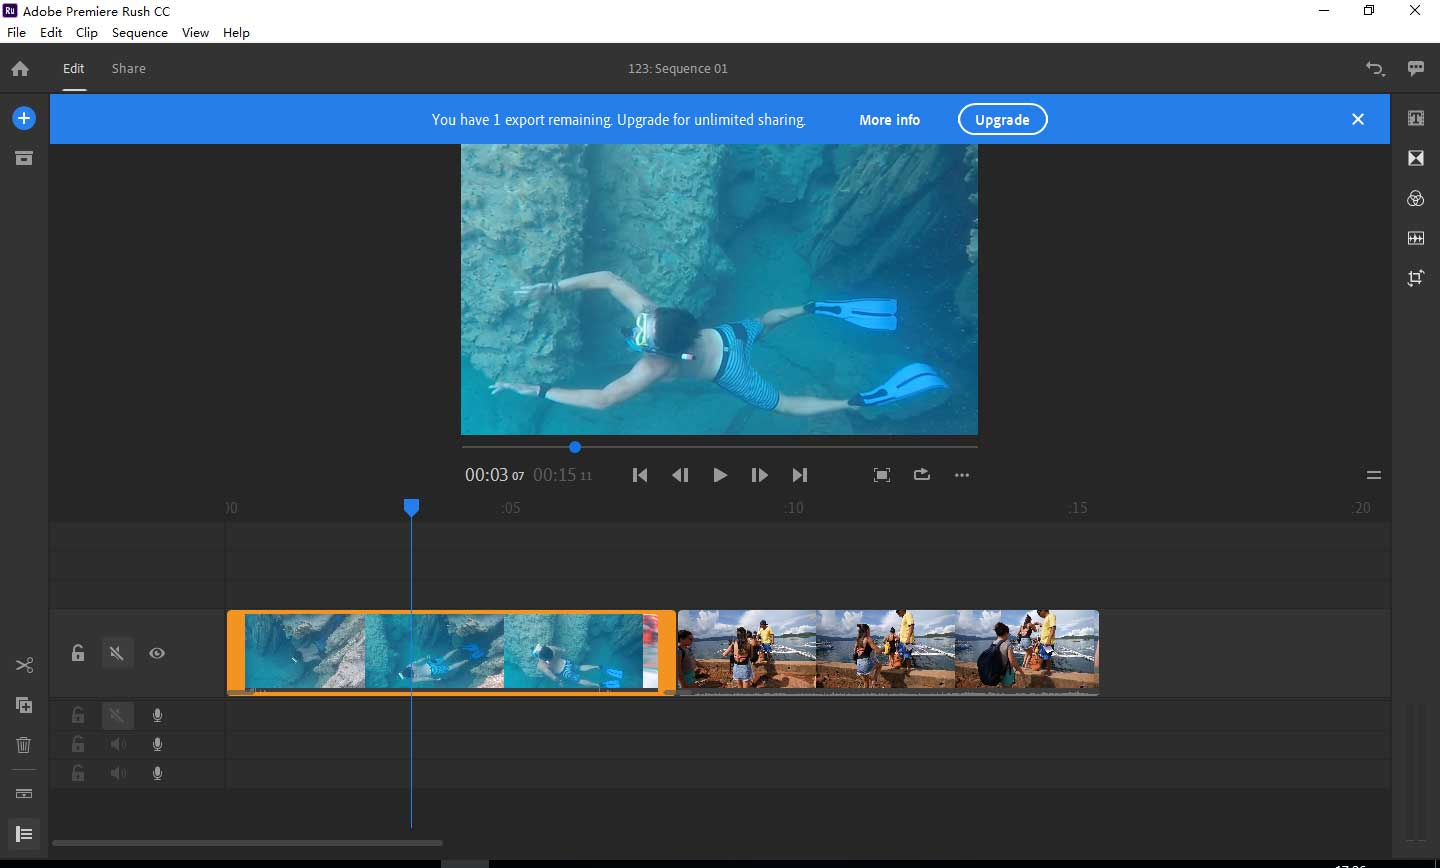 How to Cut Video Easily and Quickly (The Definitive Guide) - MiniTool